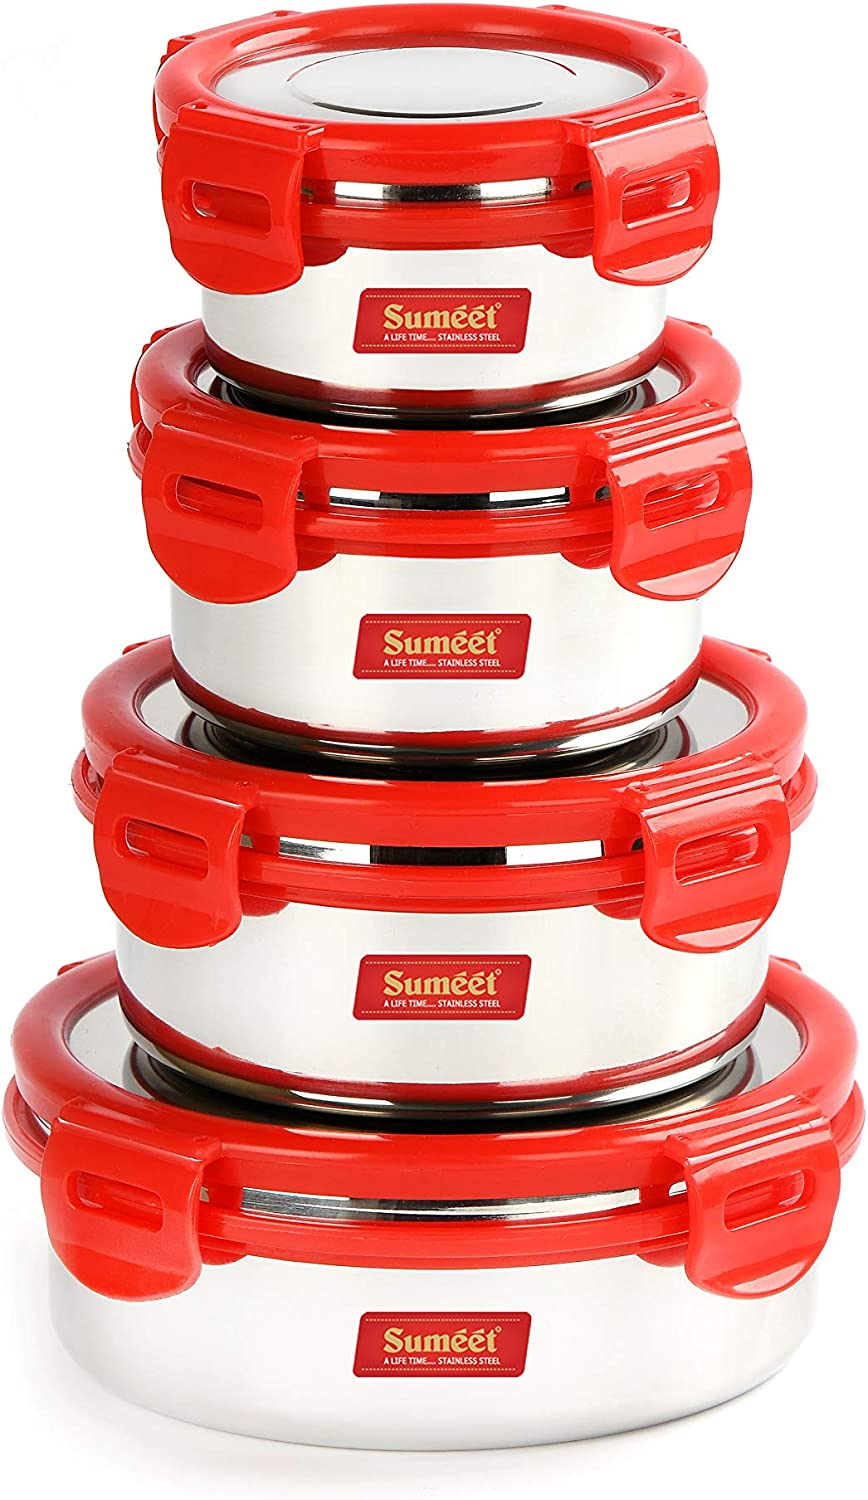 Sumeet Airtight Leak Proof Steelexo Max 48% OFF S.S. Direct sale of manufacturer Box Lunch w Container